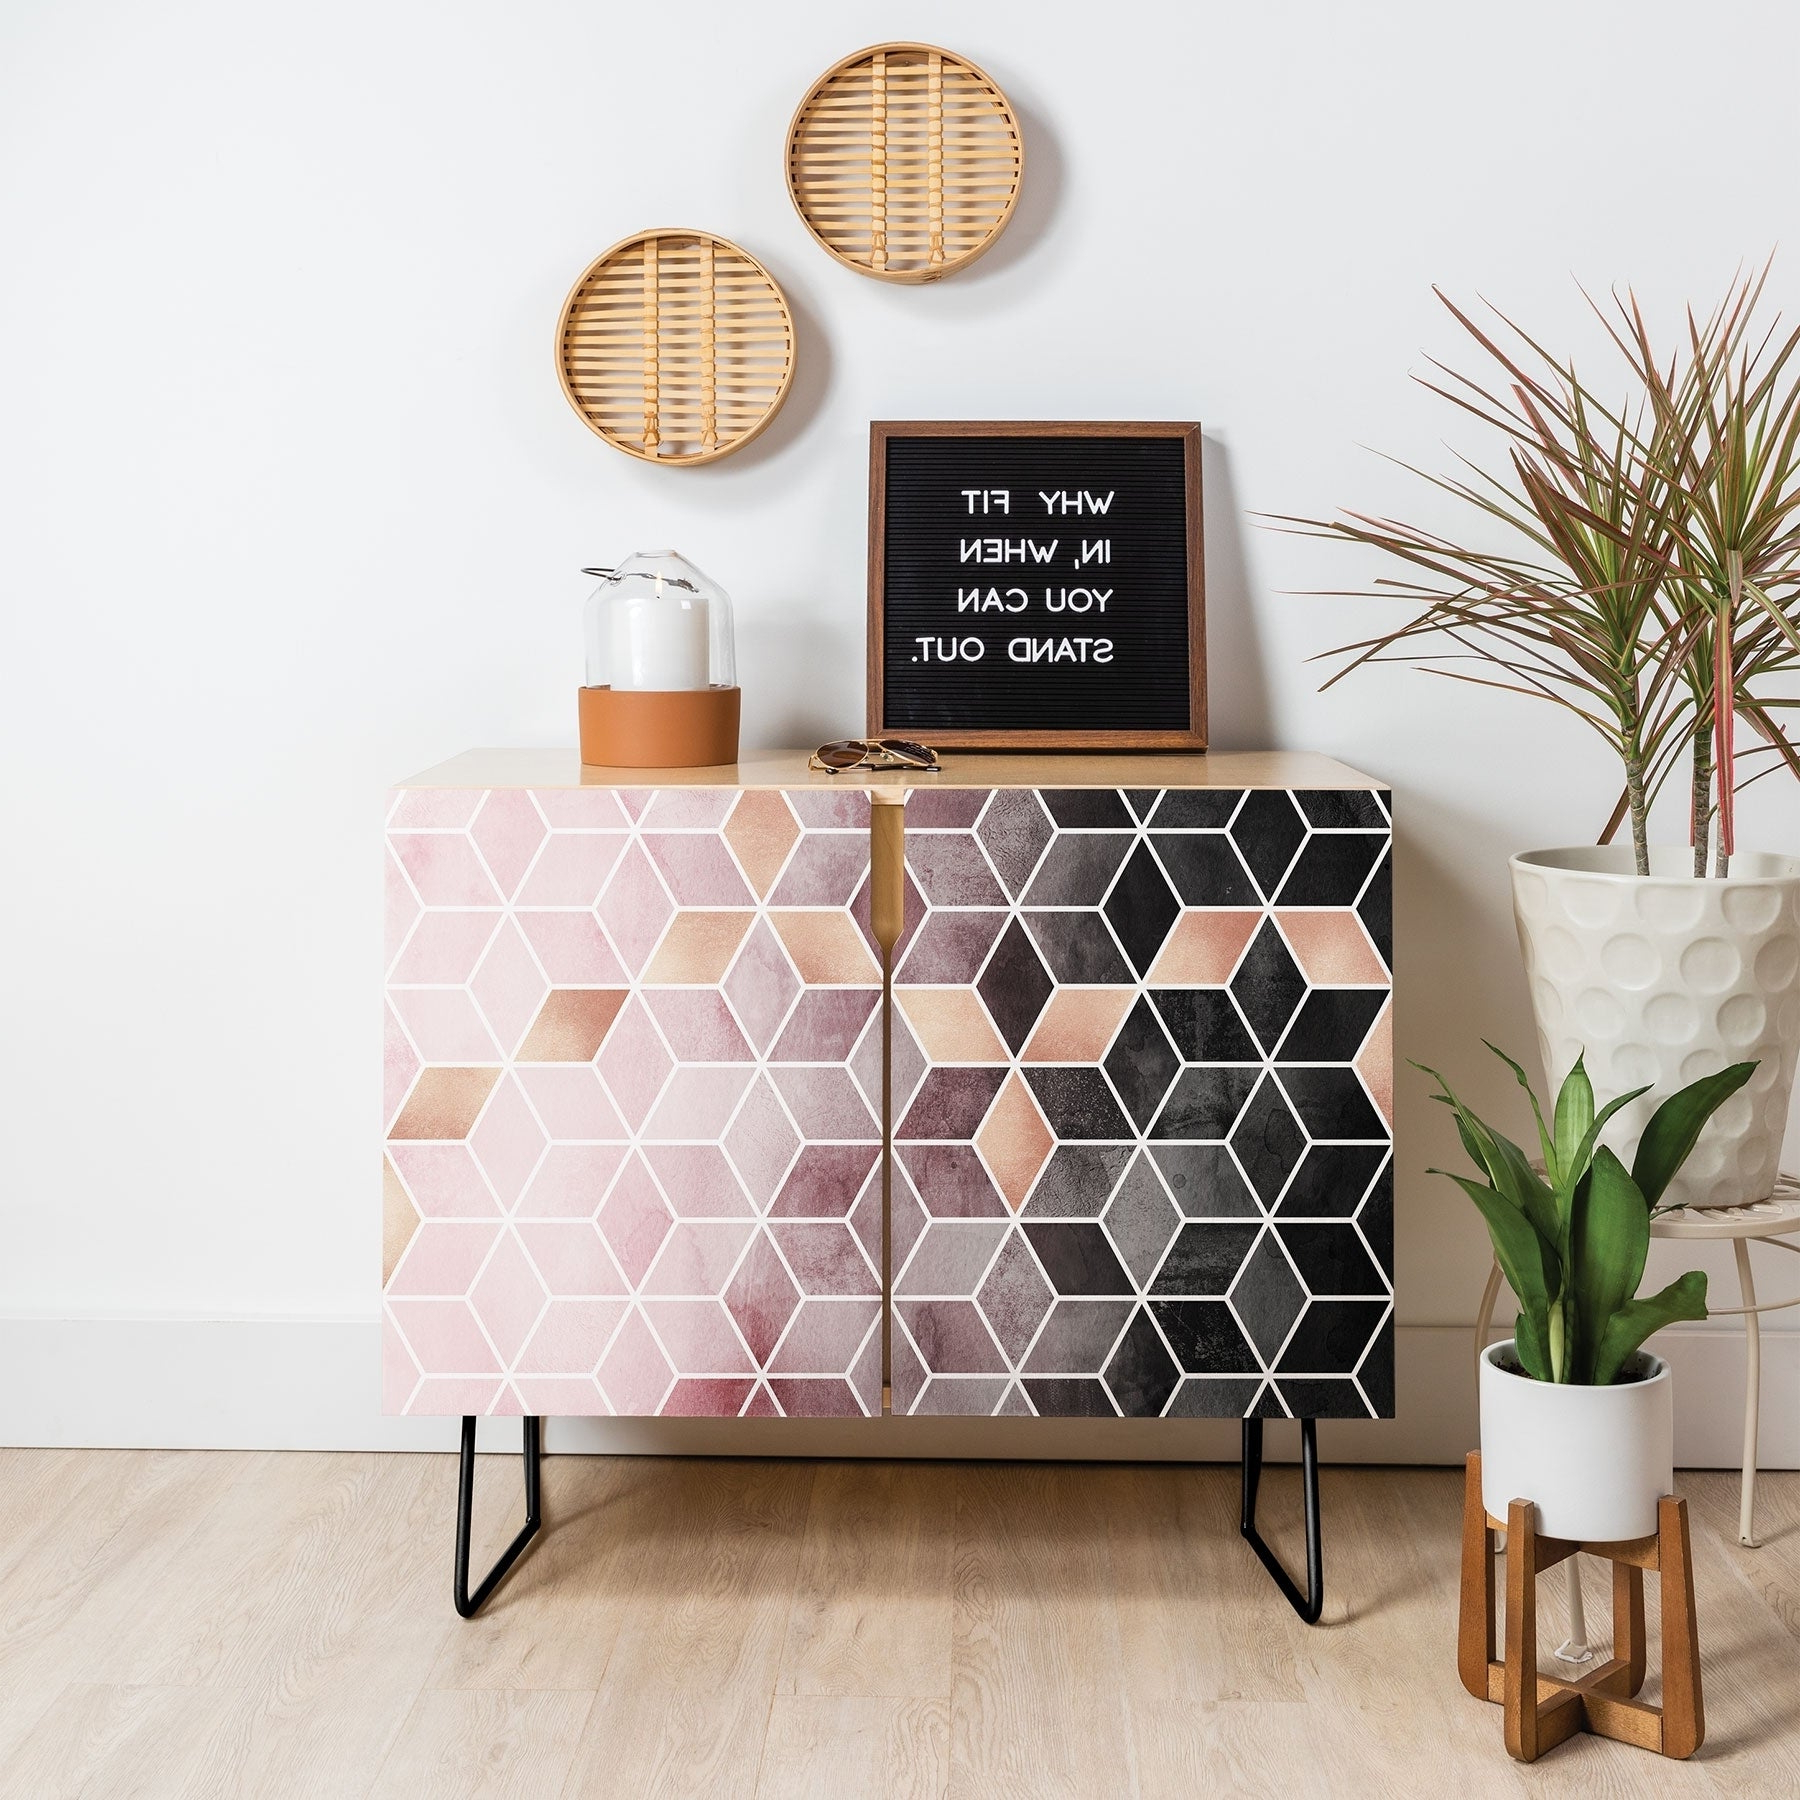 Deny Designs Pink Grey Gradient Cubes Credenza (Birch Or Walnut, 2 Leg Options) For Emerald Cubes Credenzas (View 14 of 20)